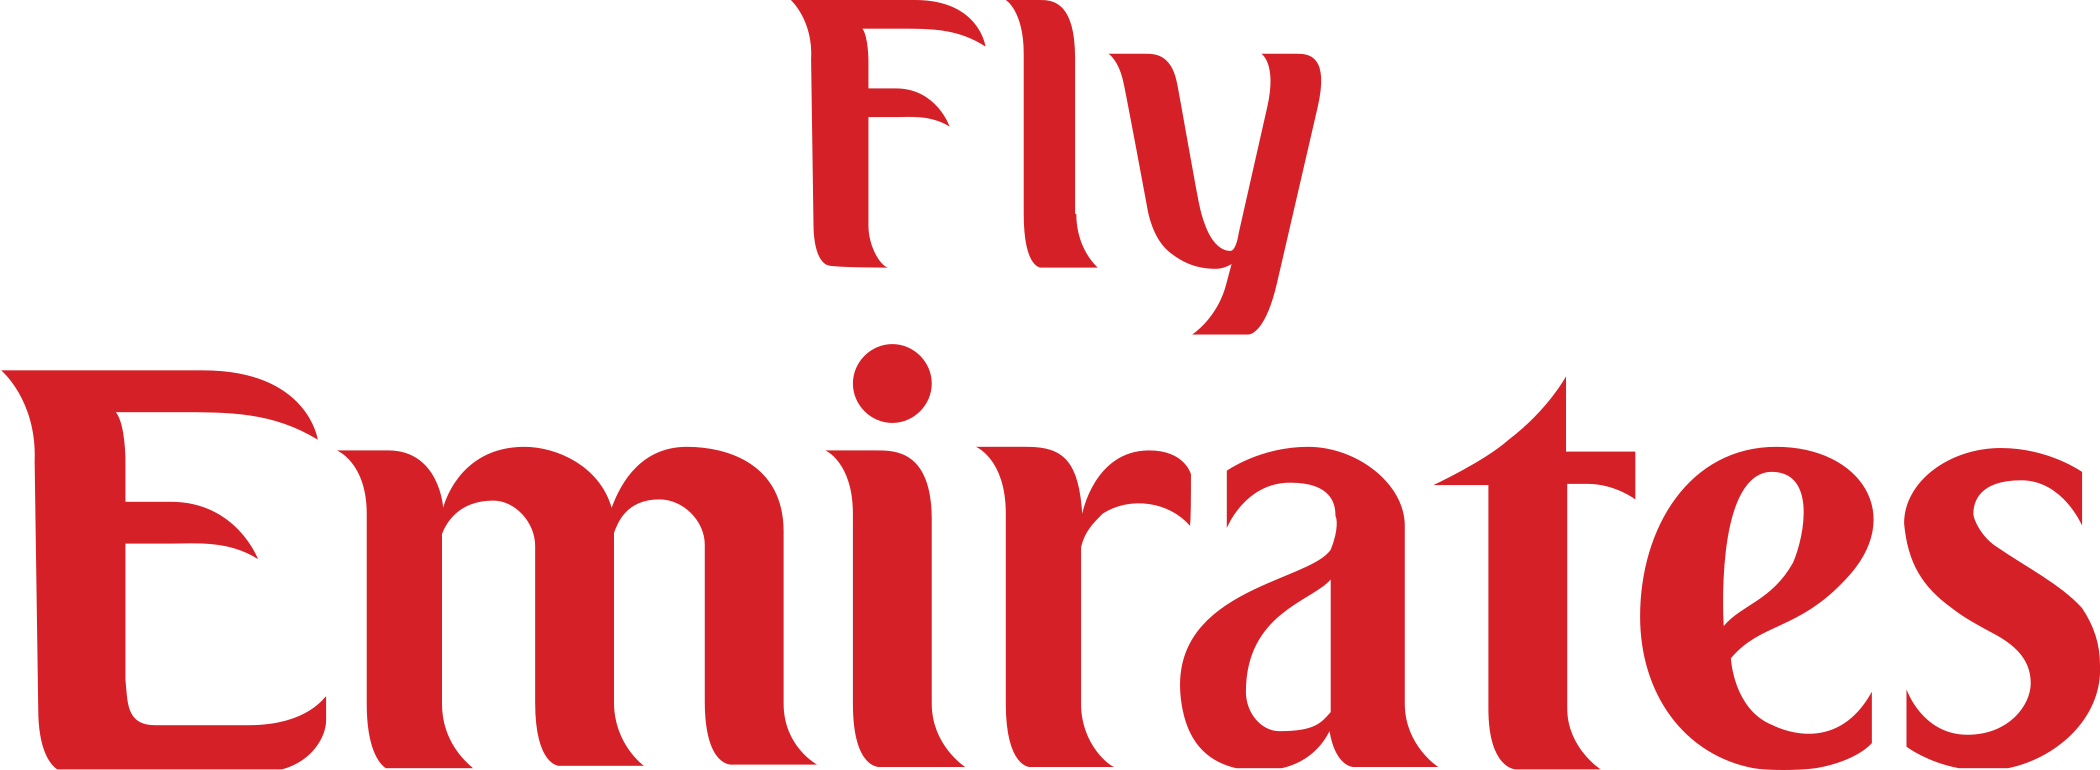 fly emirates logo 2 - Fly Emirates Logo